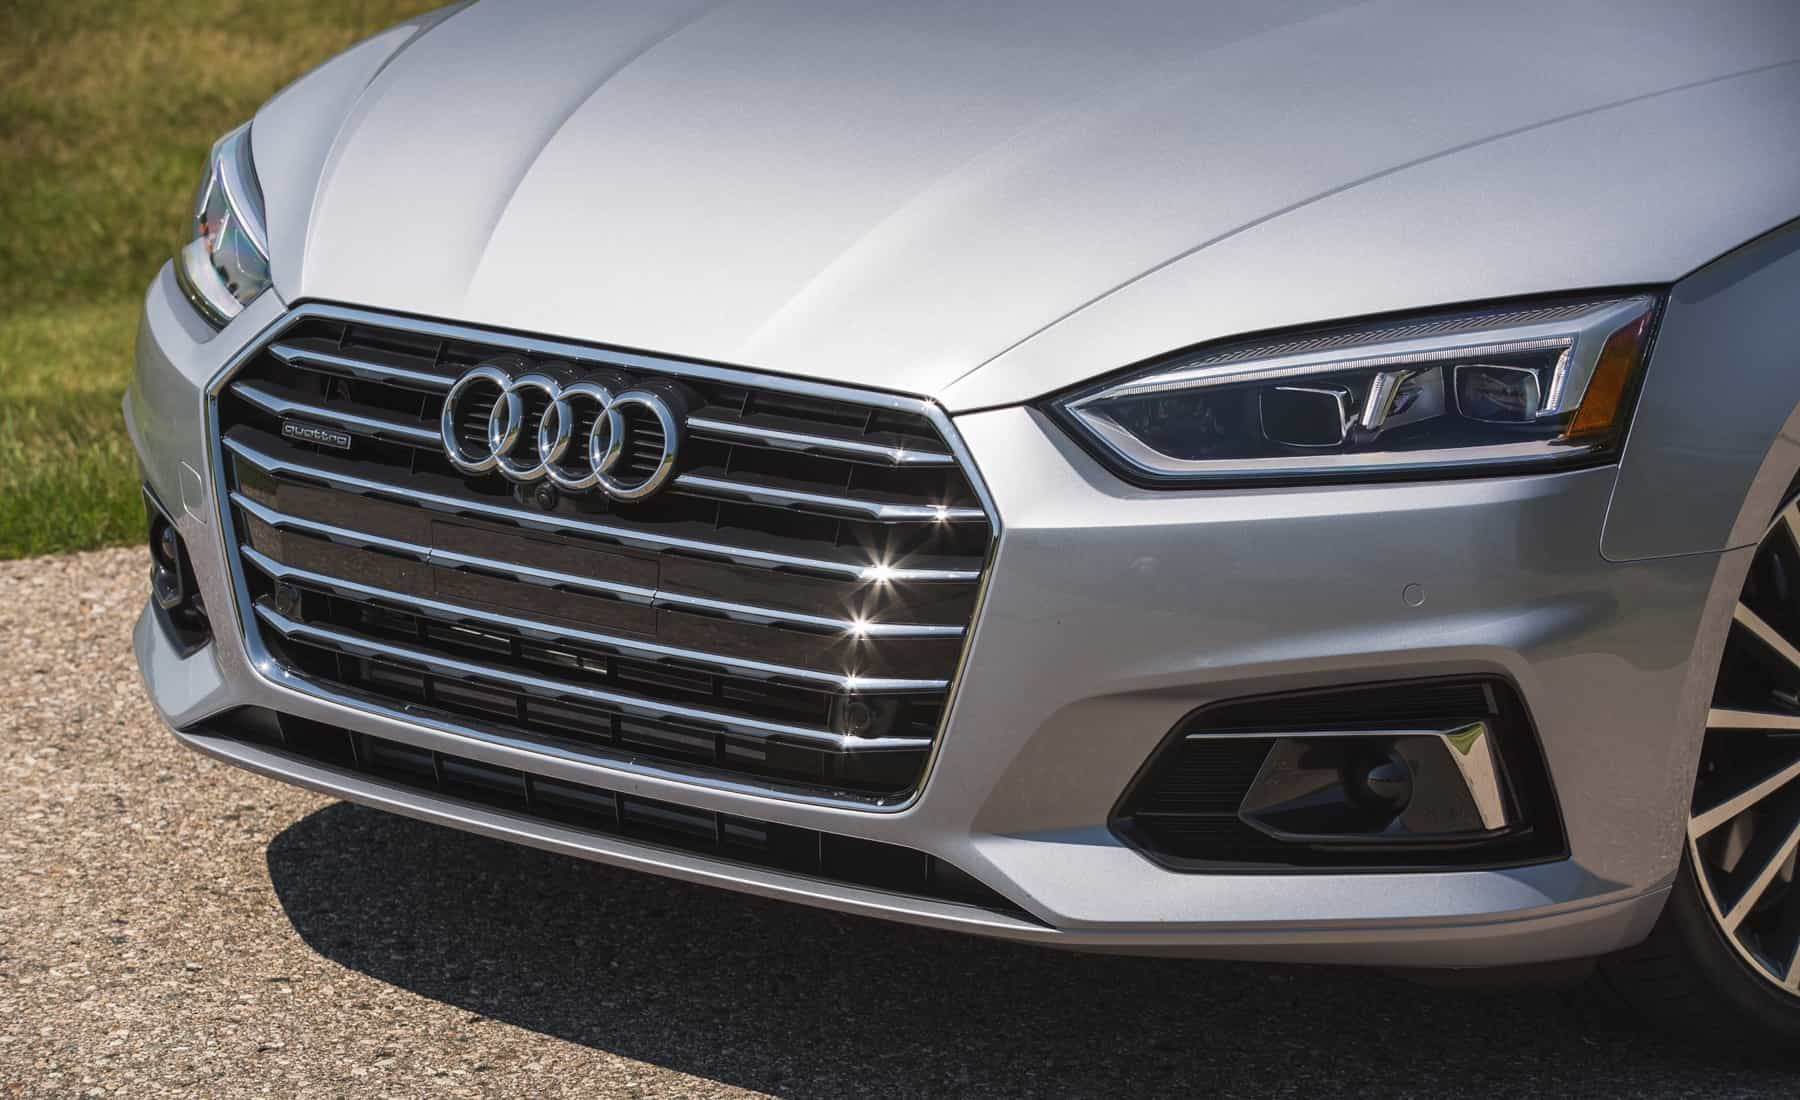 2018 Audi A5 Cabriolet Exterior View Grille And Bumper (Photo 11 of 45)